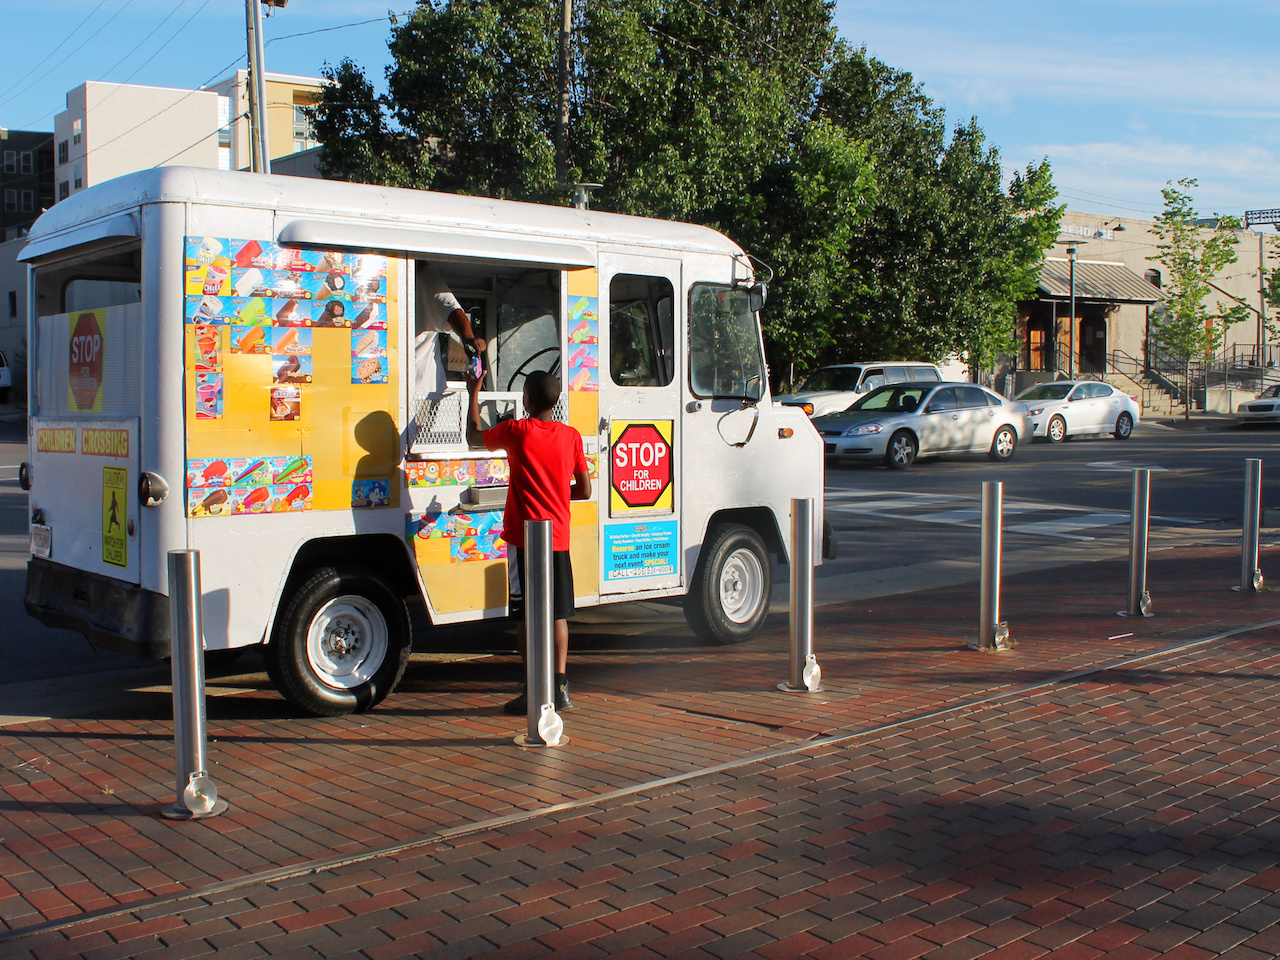 The ice cream truck often visits the park to offer sweet icy treats to parents and kids alike.